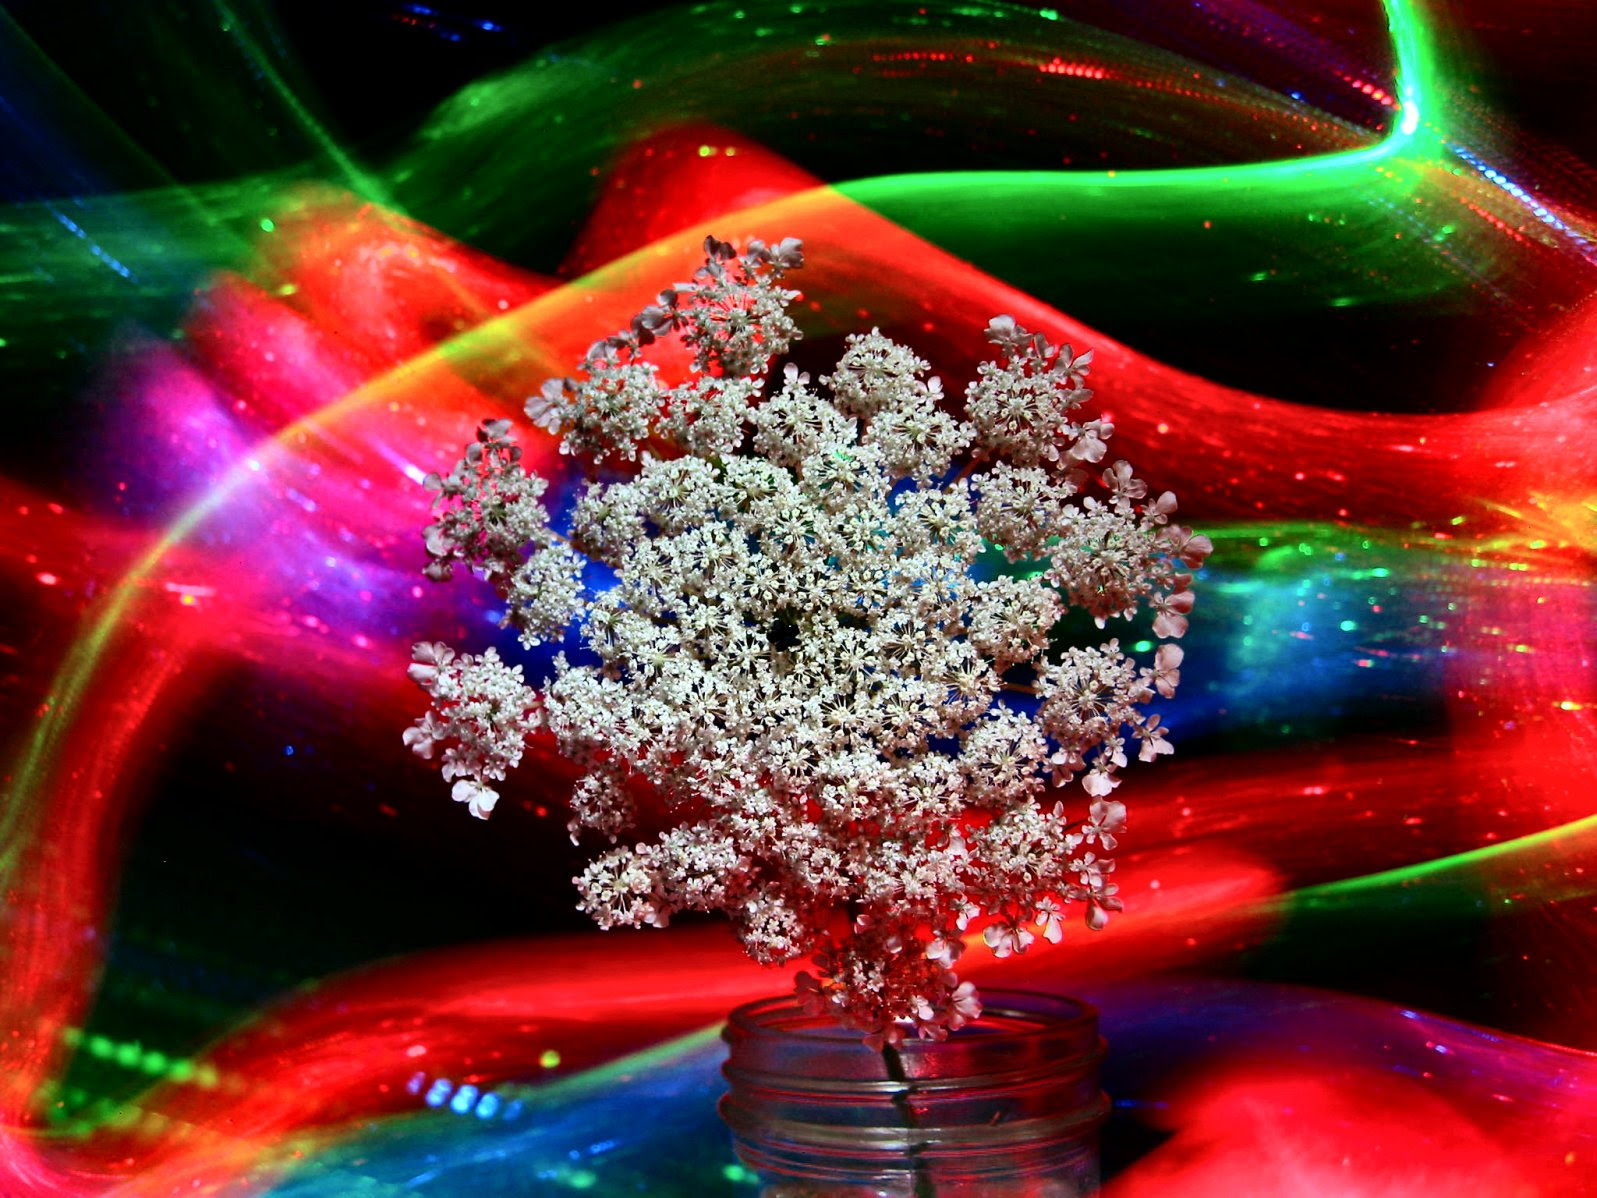 Glactic Space Weed - Queen Annes Lace in Space - soul-amp.com